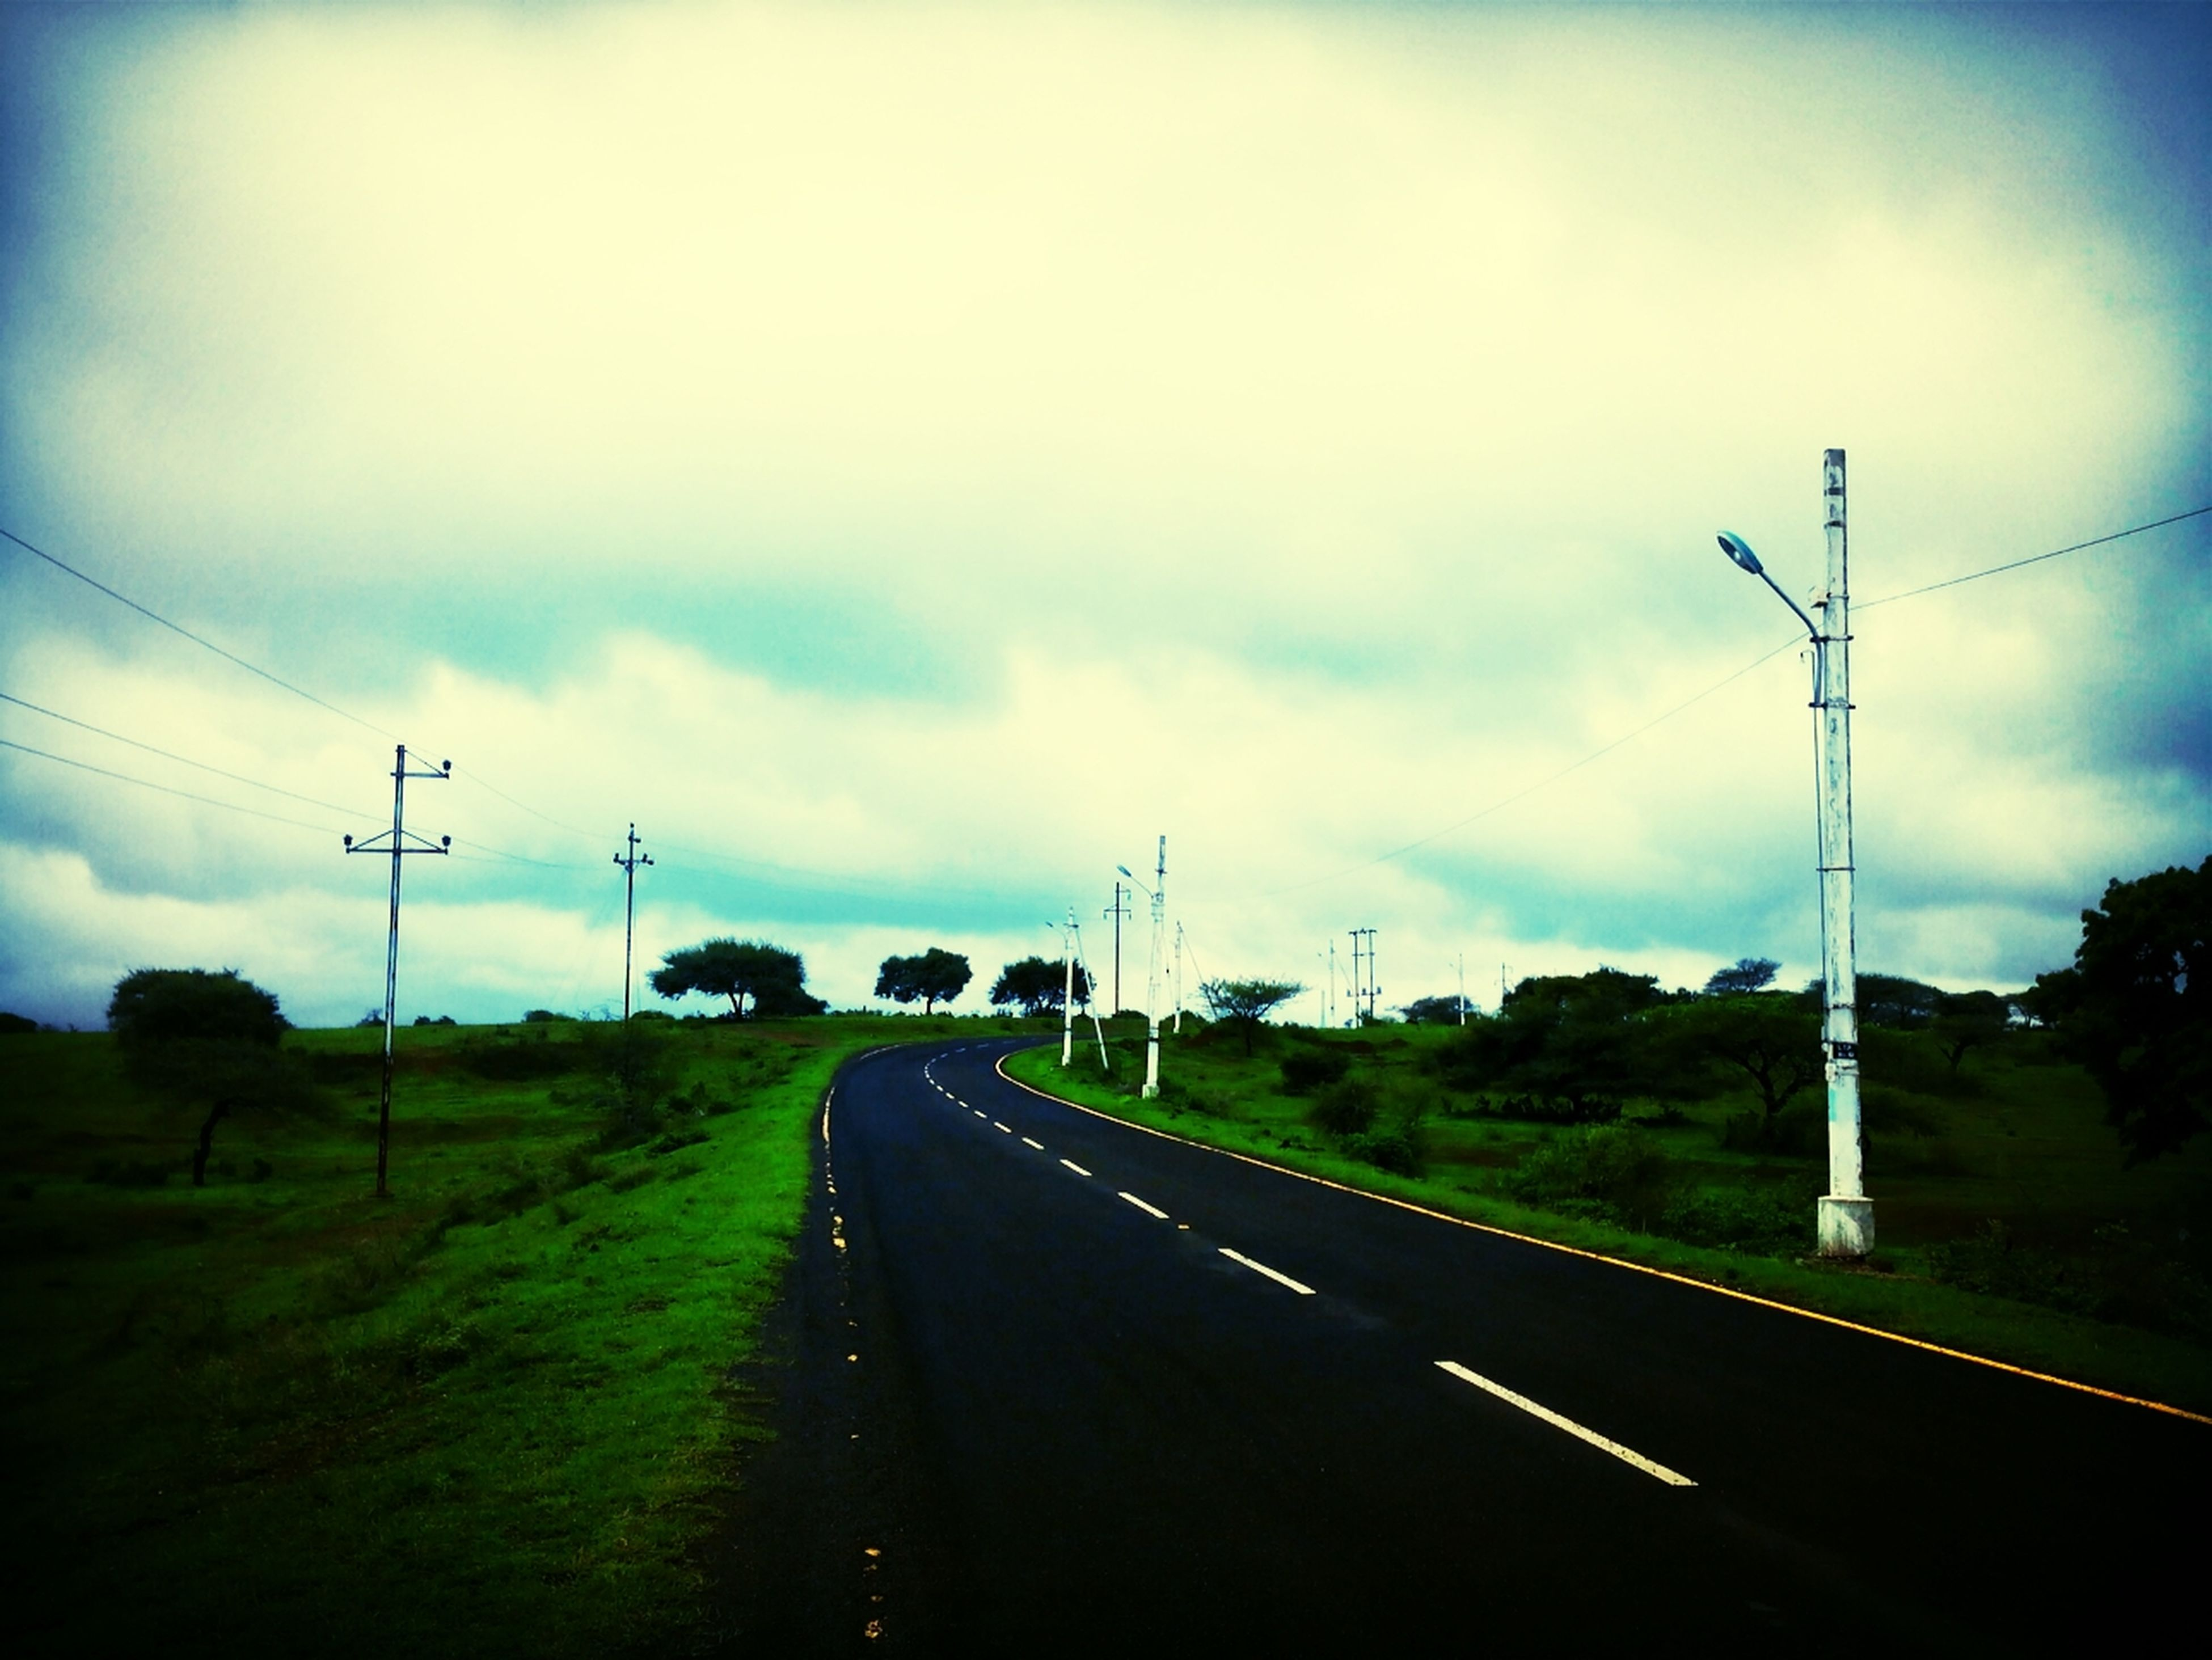 the way forward, transportation, sky, road, diminishing perspective, electricity pylon, cloud - sky, vanishing point, road marking, cloudy, power line, electricity, landscape, country road, connection, street light, cloud, empty road, power supply, tree